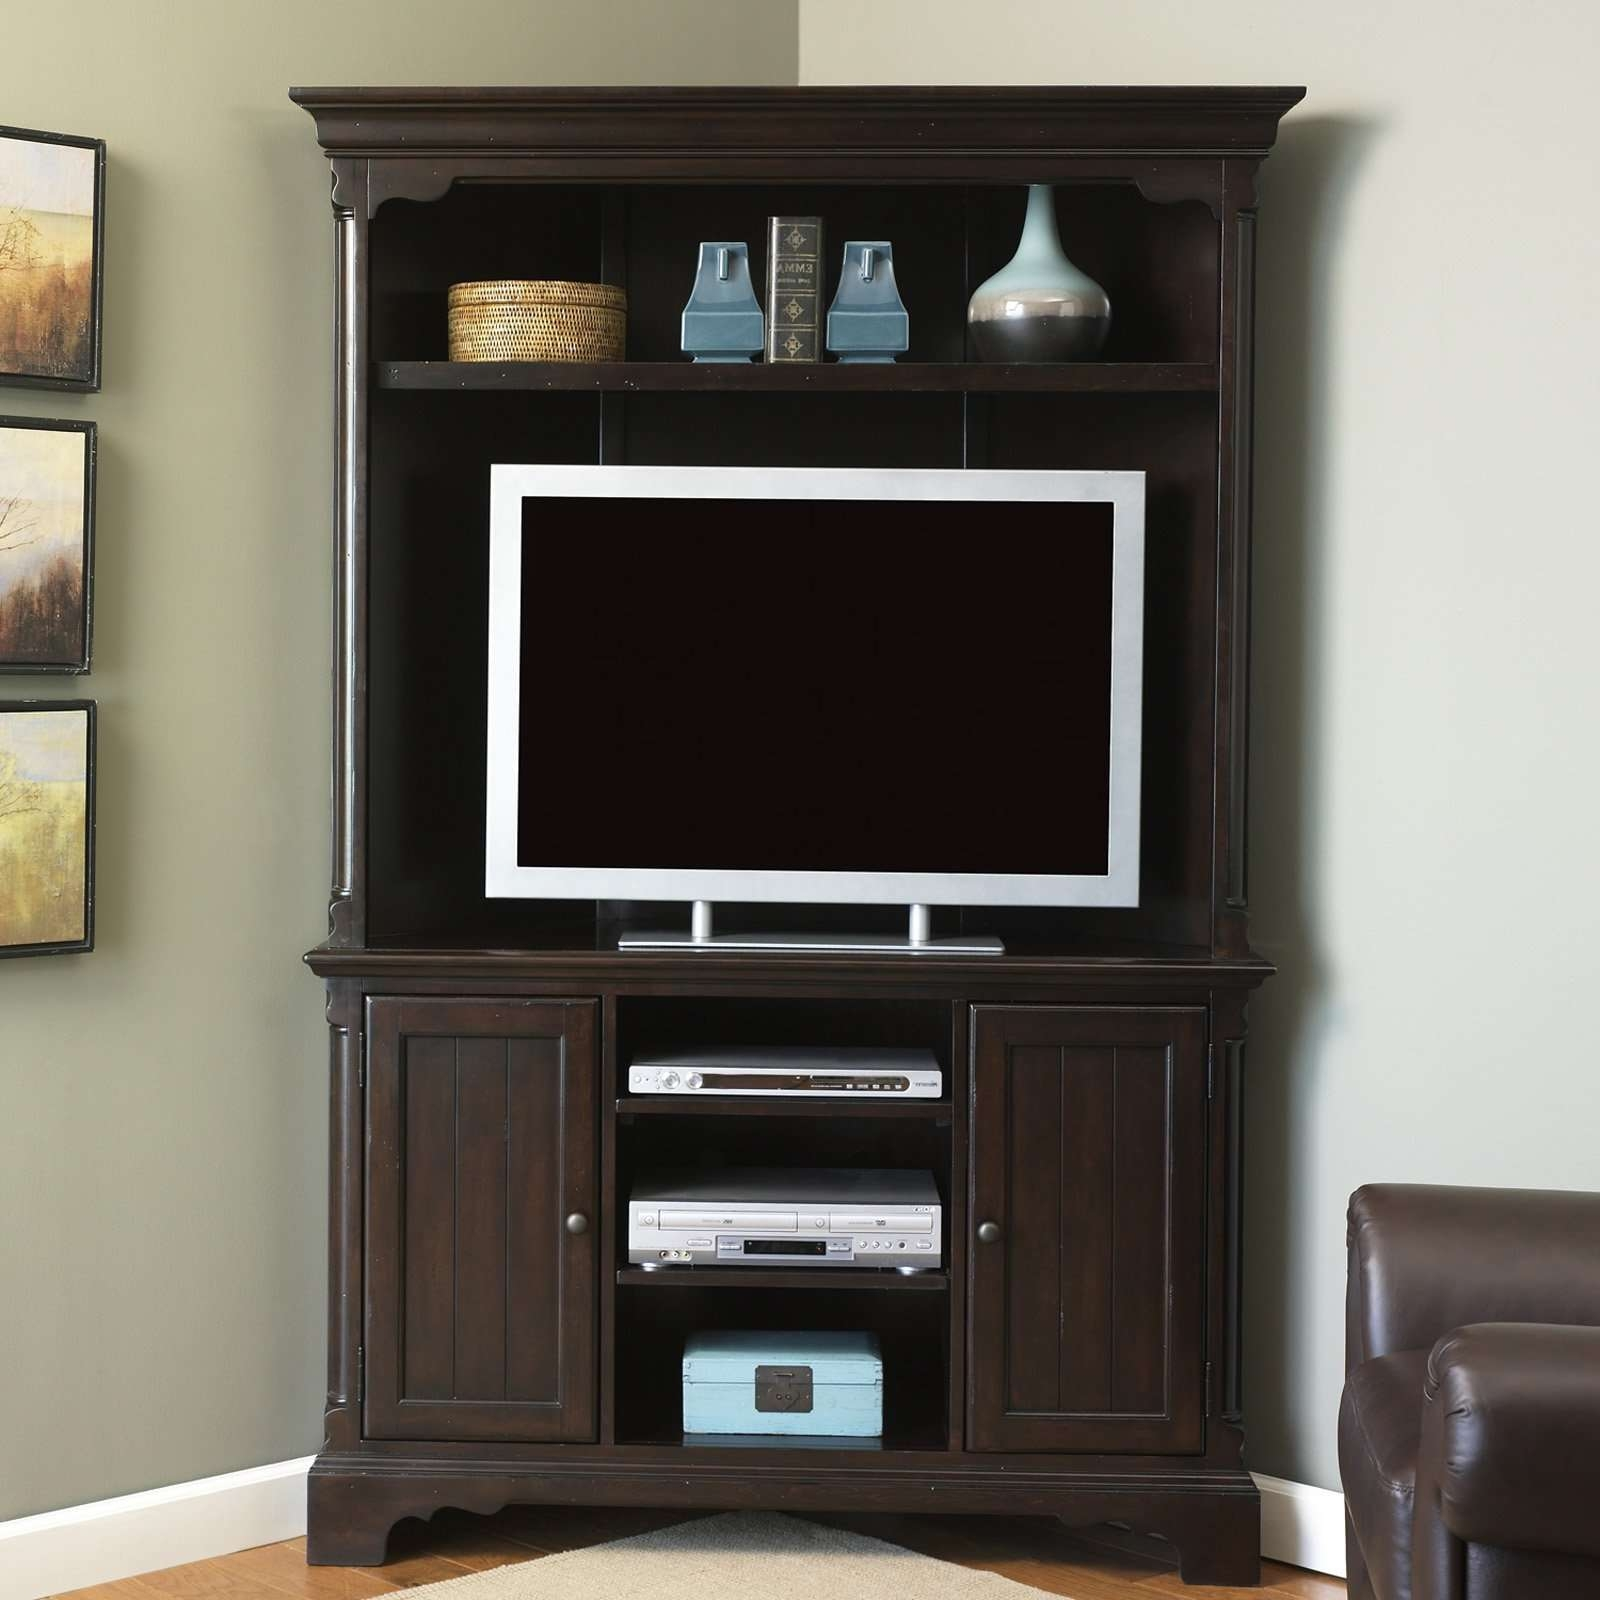 Image Gallery Of Dark Brown Corner Tv Stands View 16 Of 20 ...